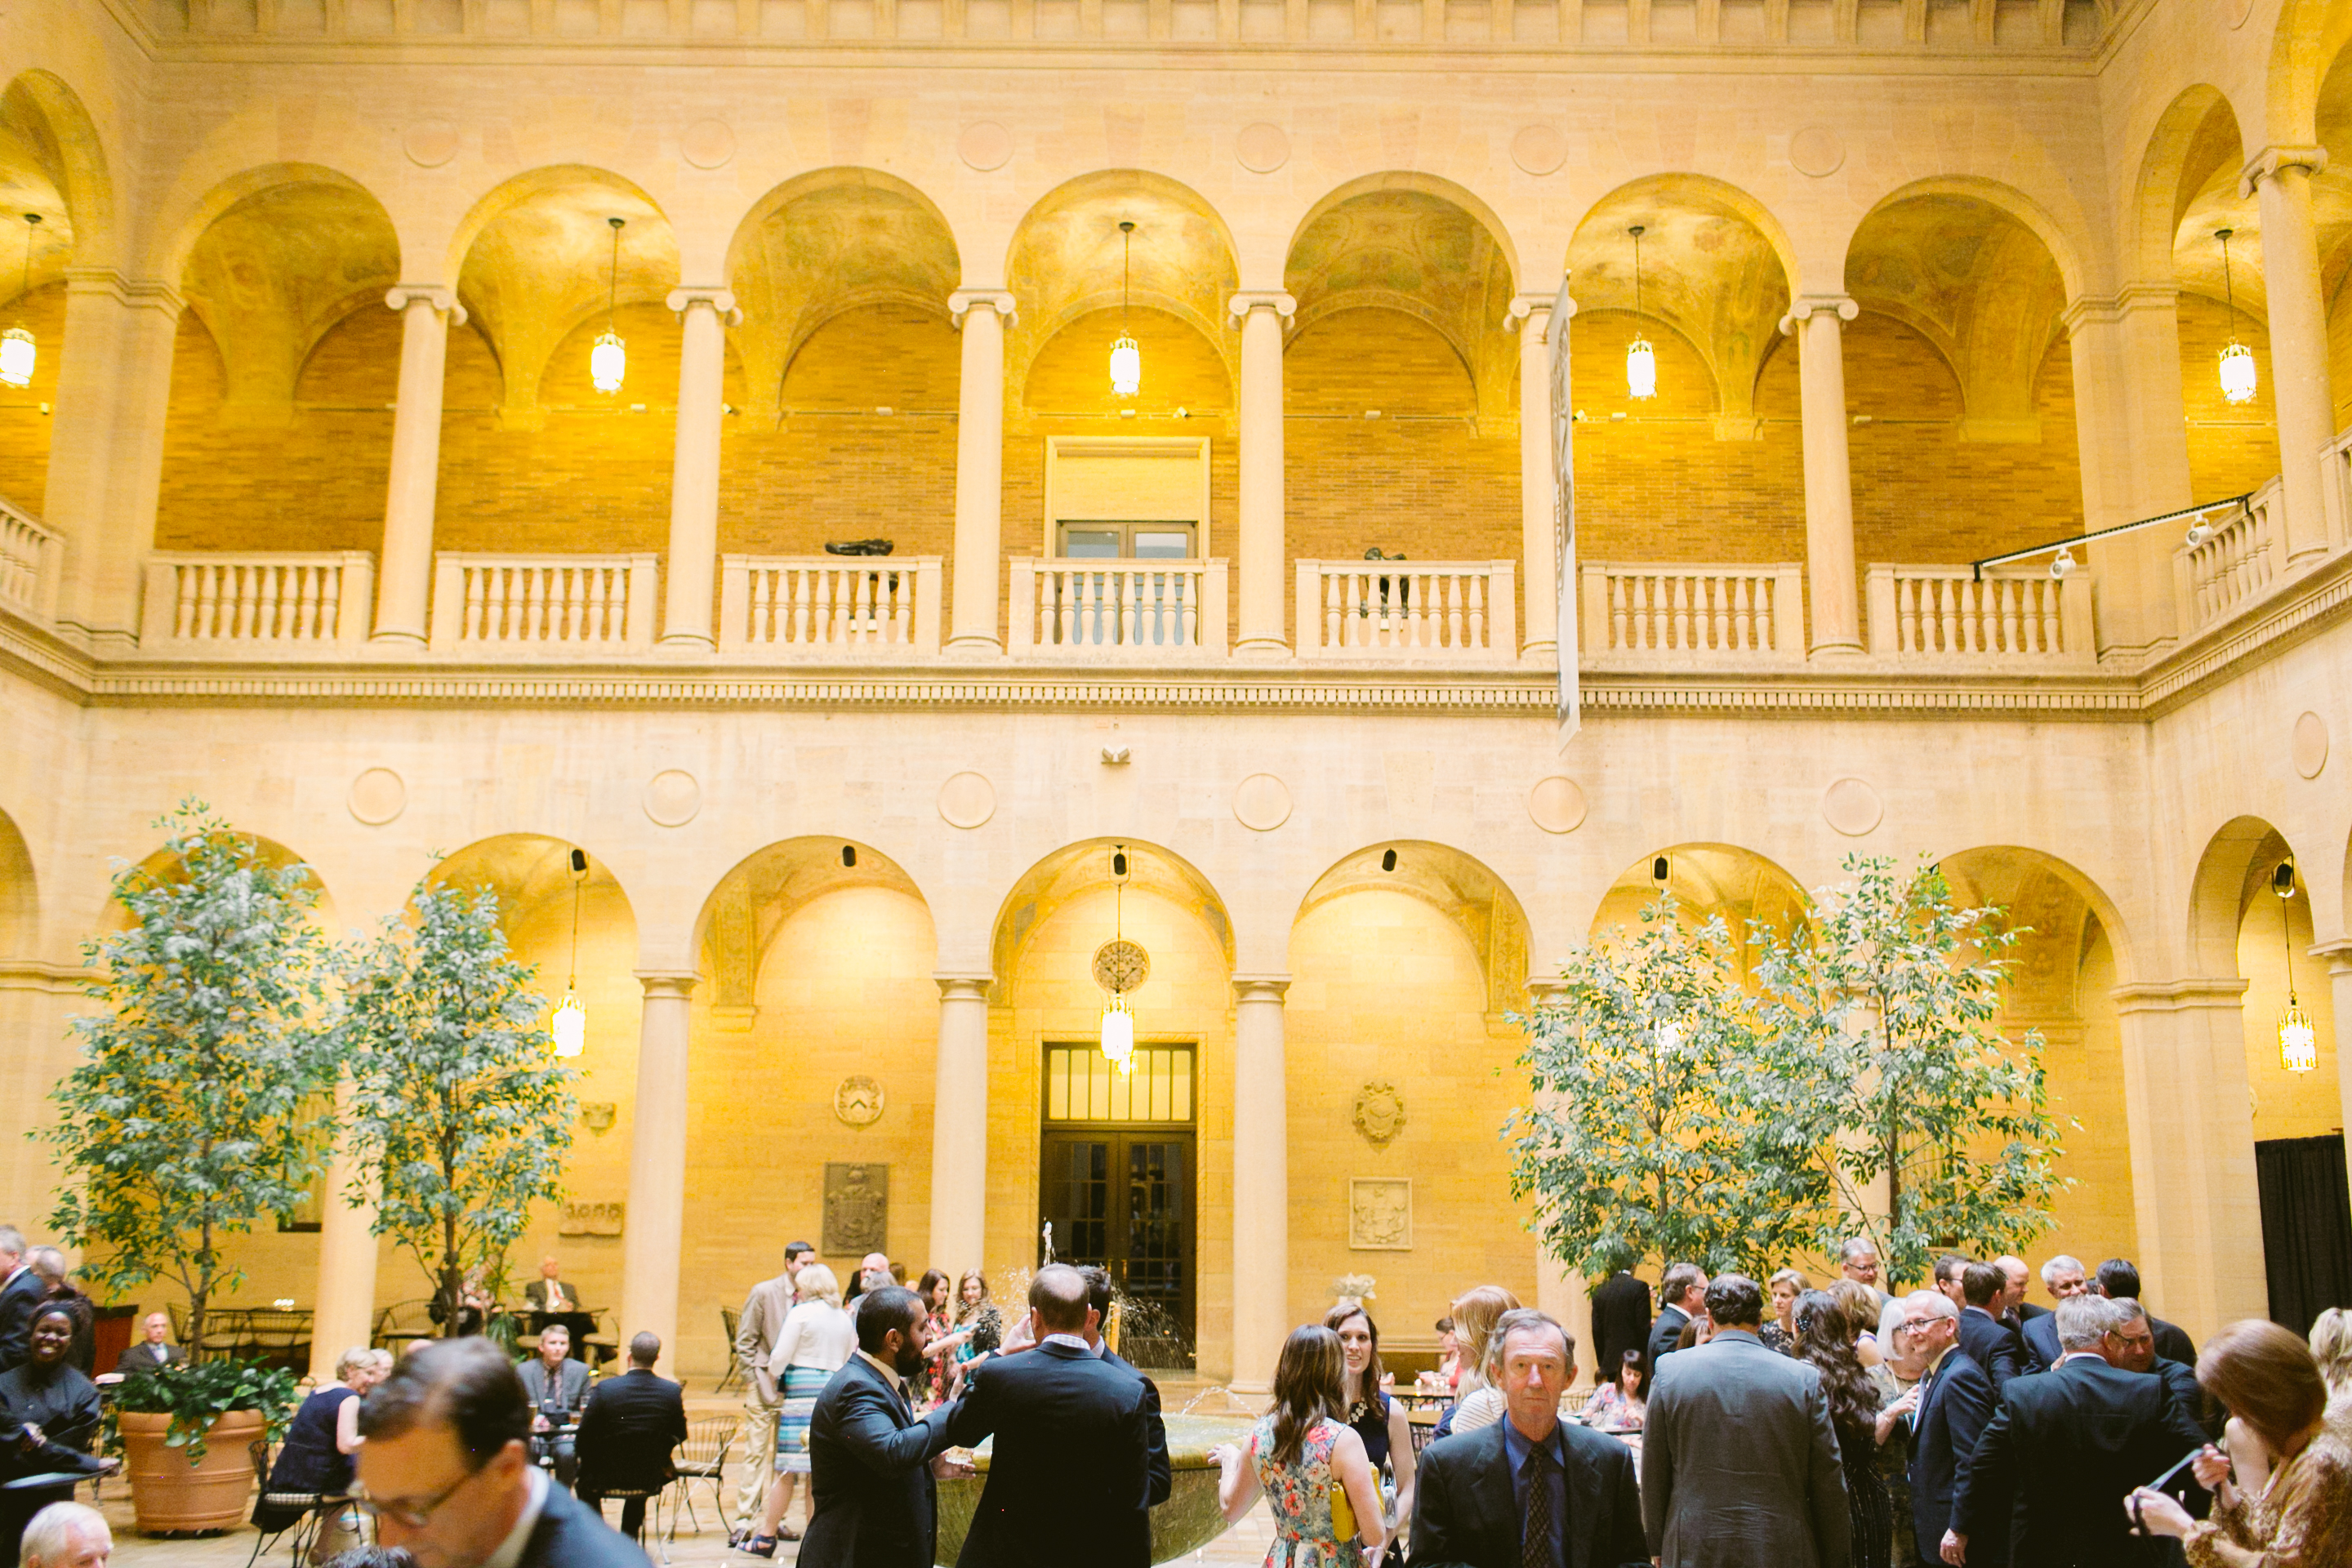 Garden Inspired Wedding at The Nelson Atkins Museum of Art - Madison Sanders Events